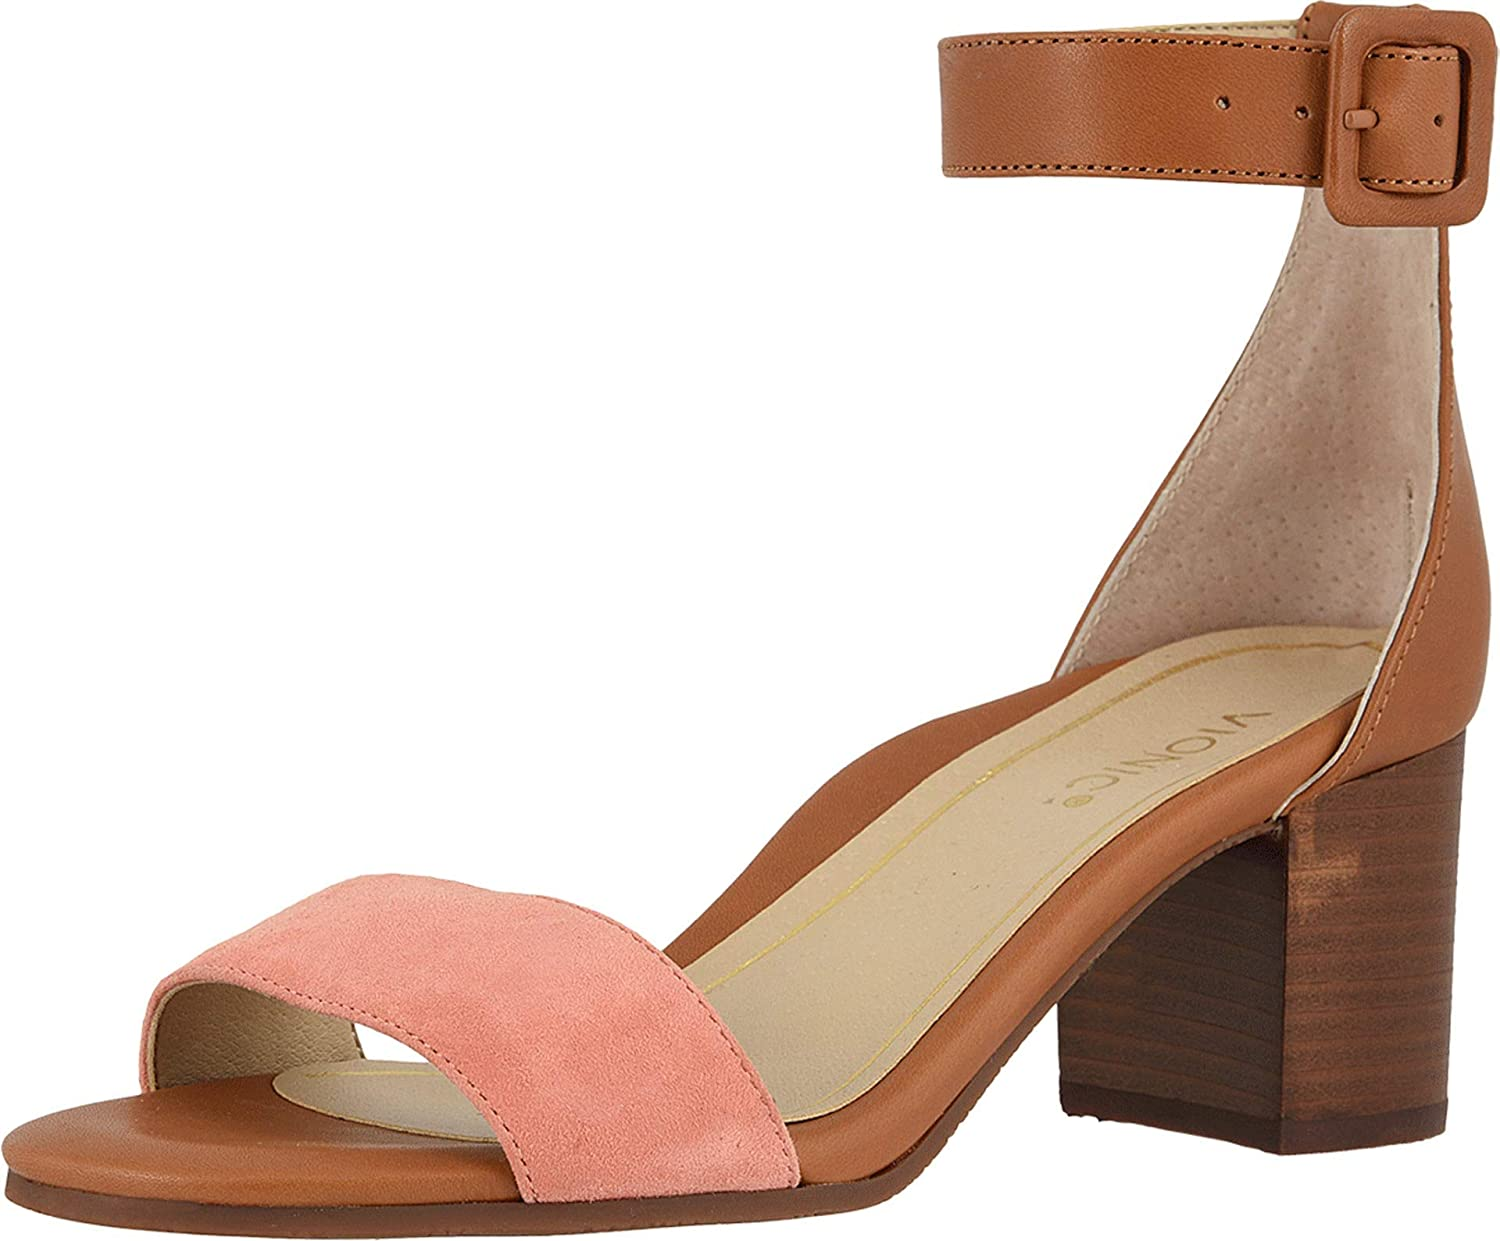 Vionic Women's Rosie Open Toe Be super welcome Heel Heeled S Ladies Max 68% OFF Ankle - Strap